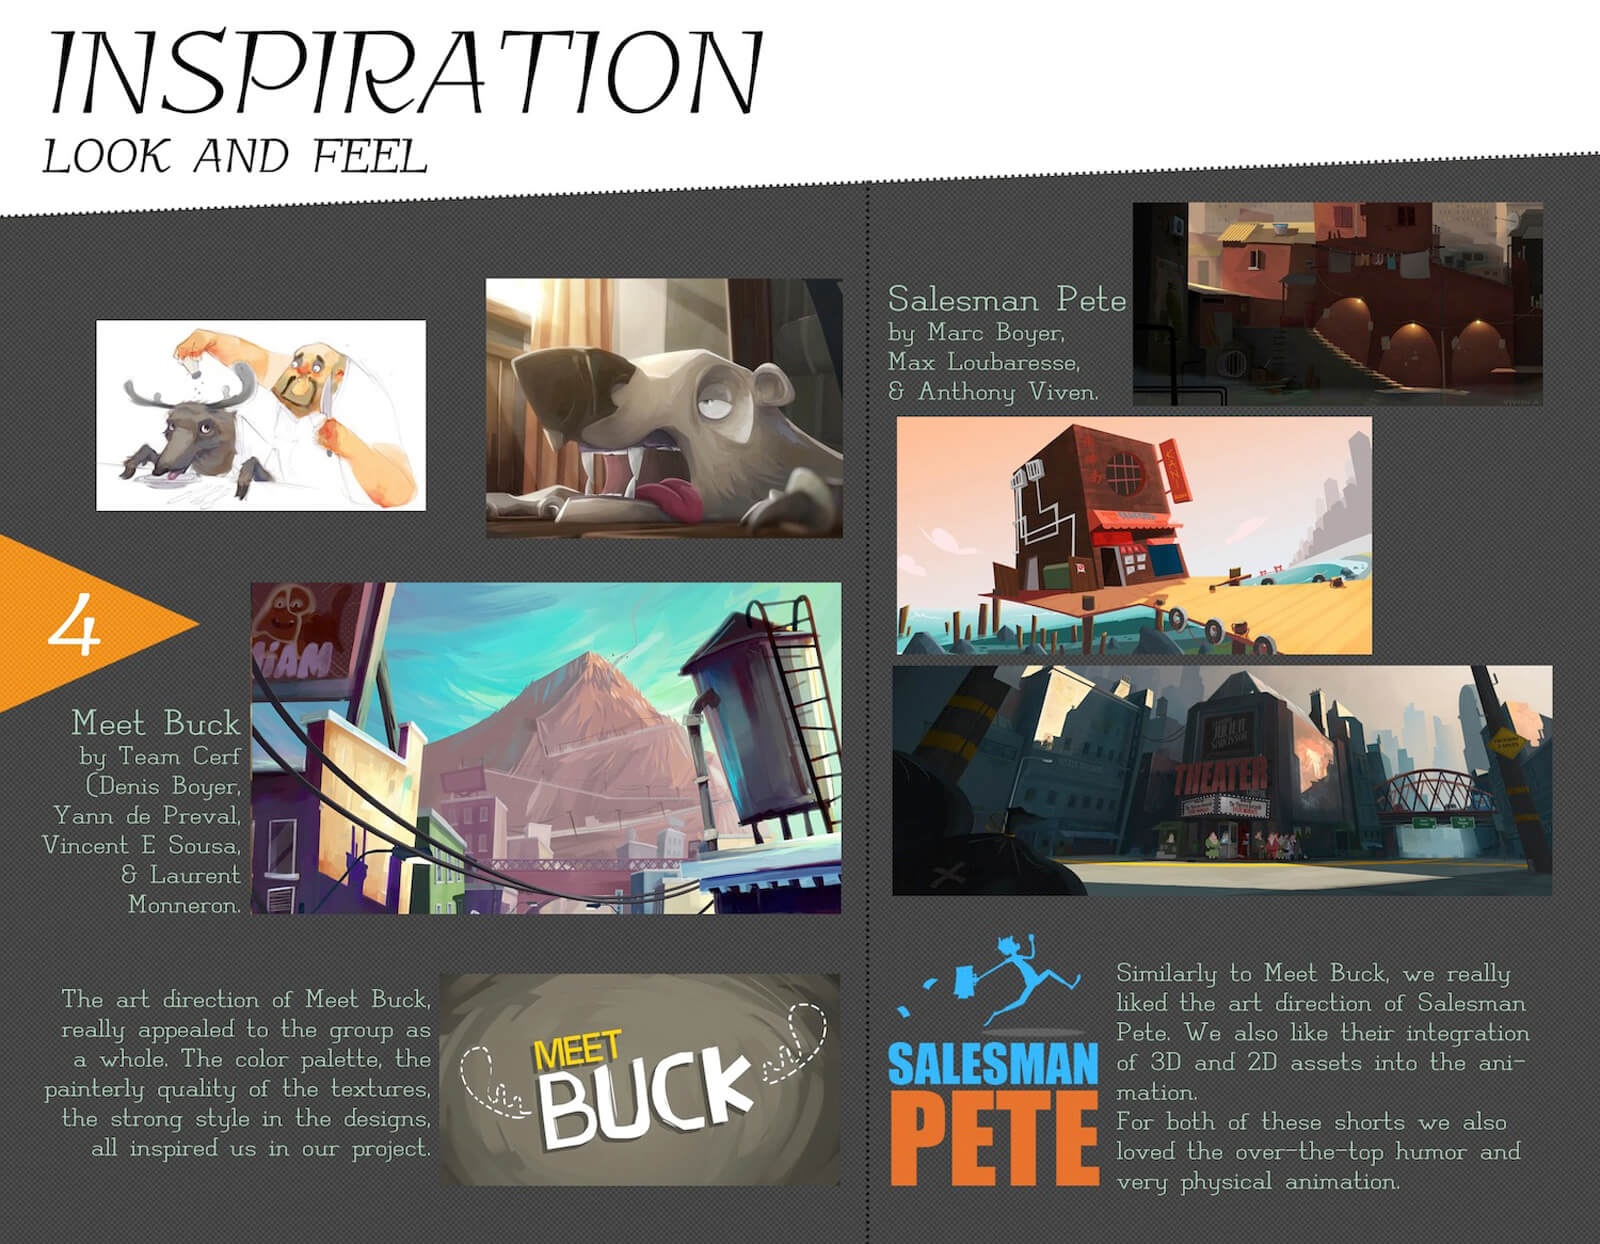 Look and feel inspiration slide for the film Super Secret, depicting reference art from Meet Buck and Salesman Pete